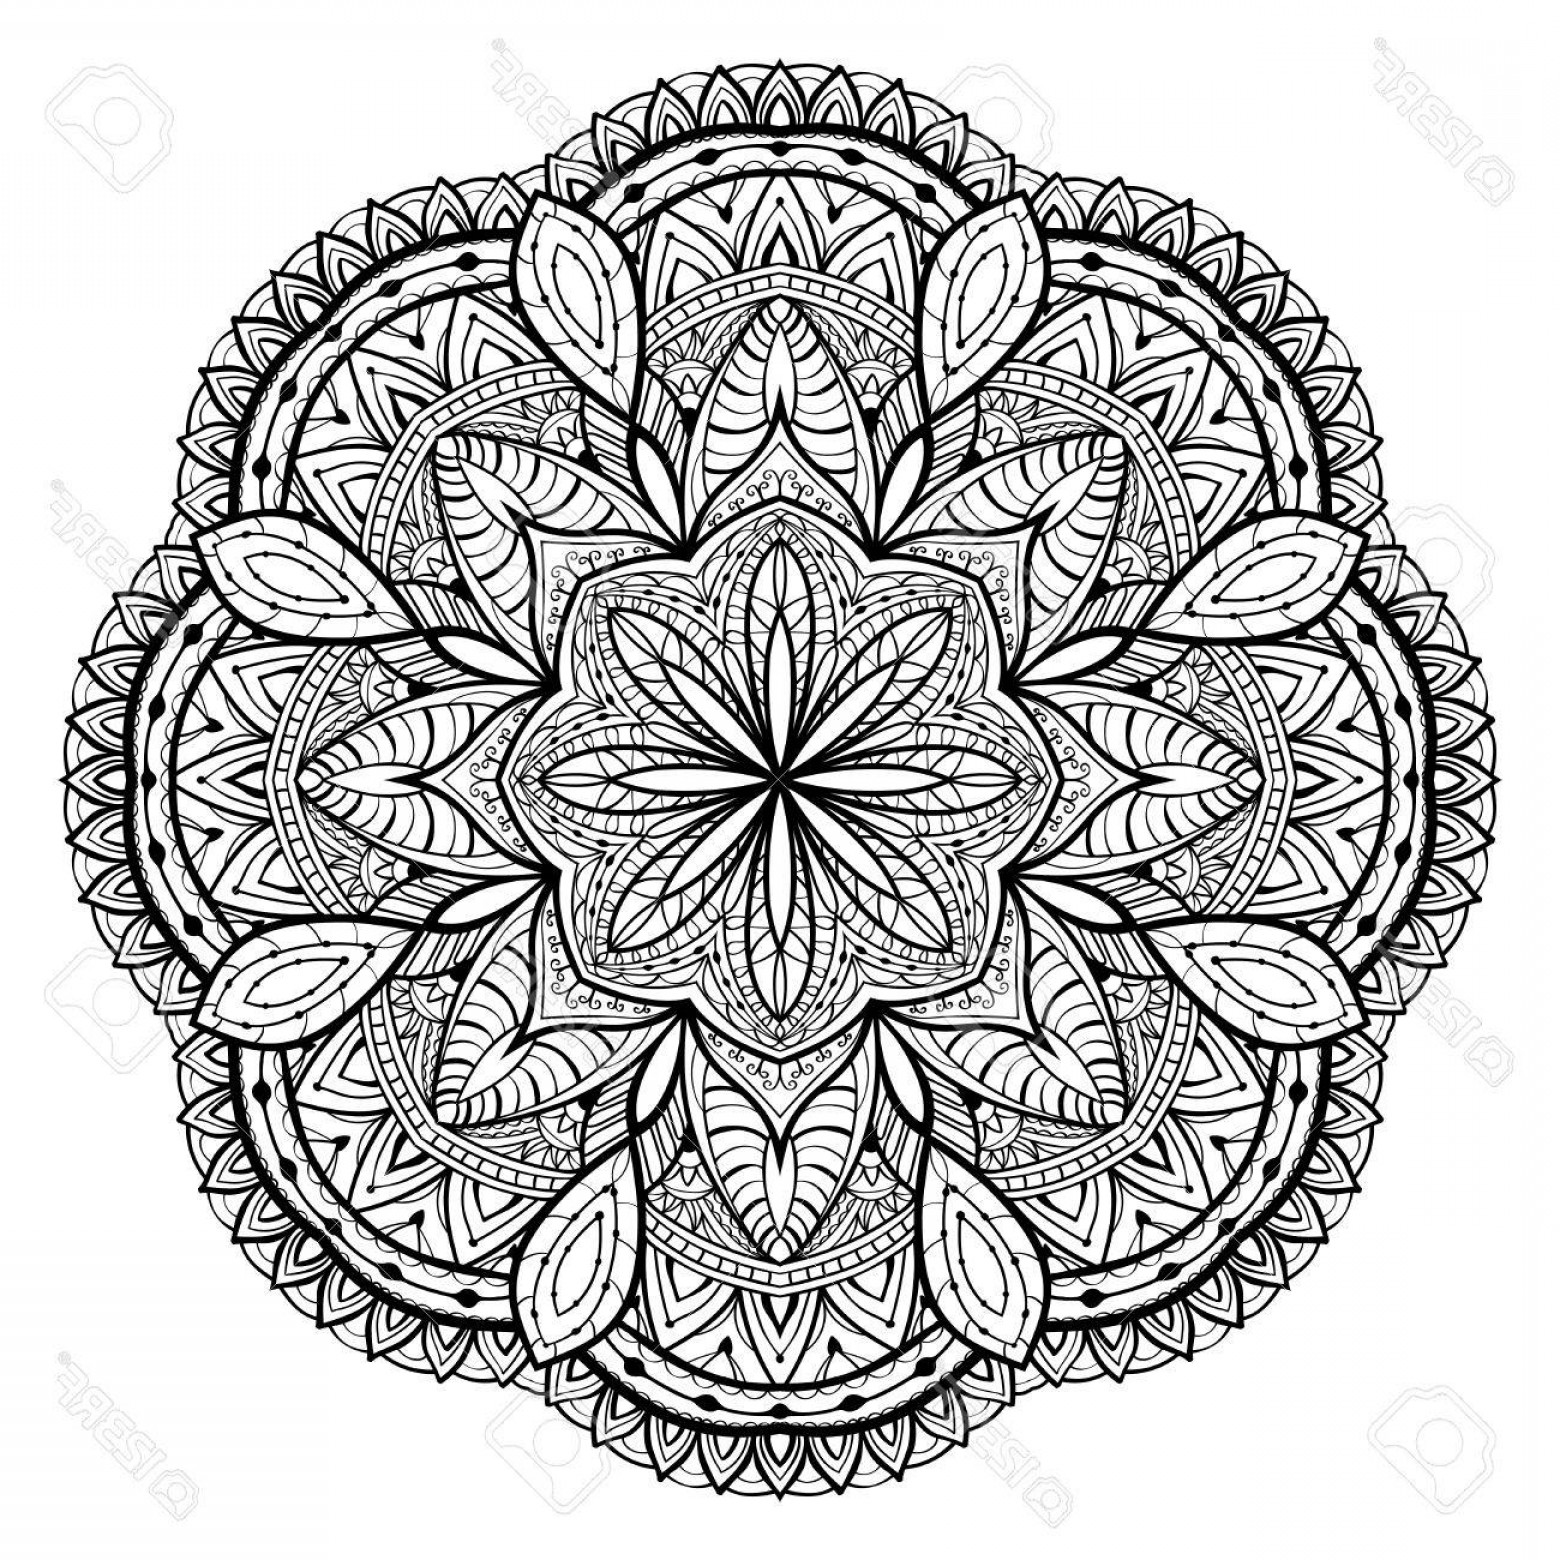 White Lace Vector: Photostock Vector Ornamental Black Lace Vector Mandala On A White Background